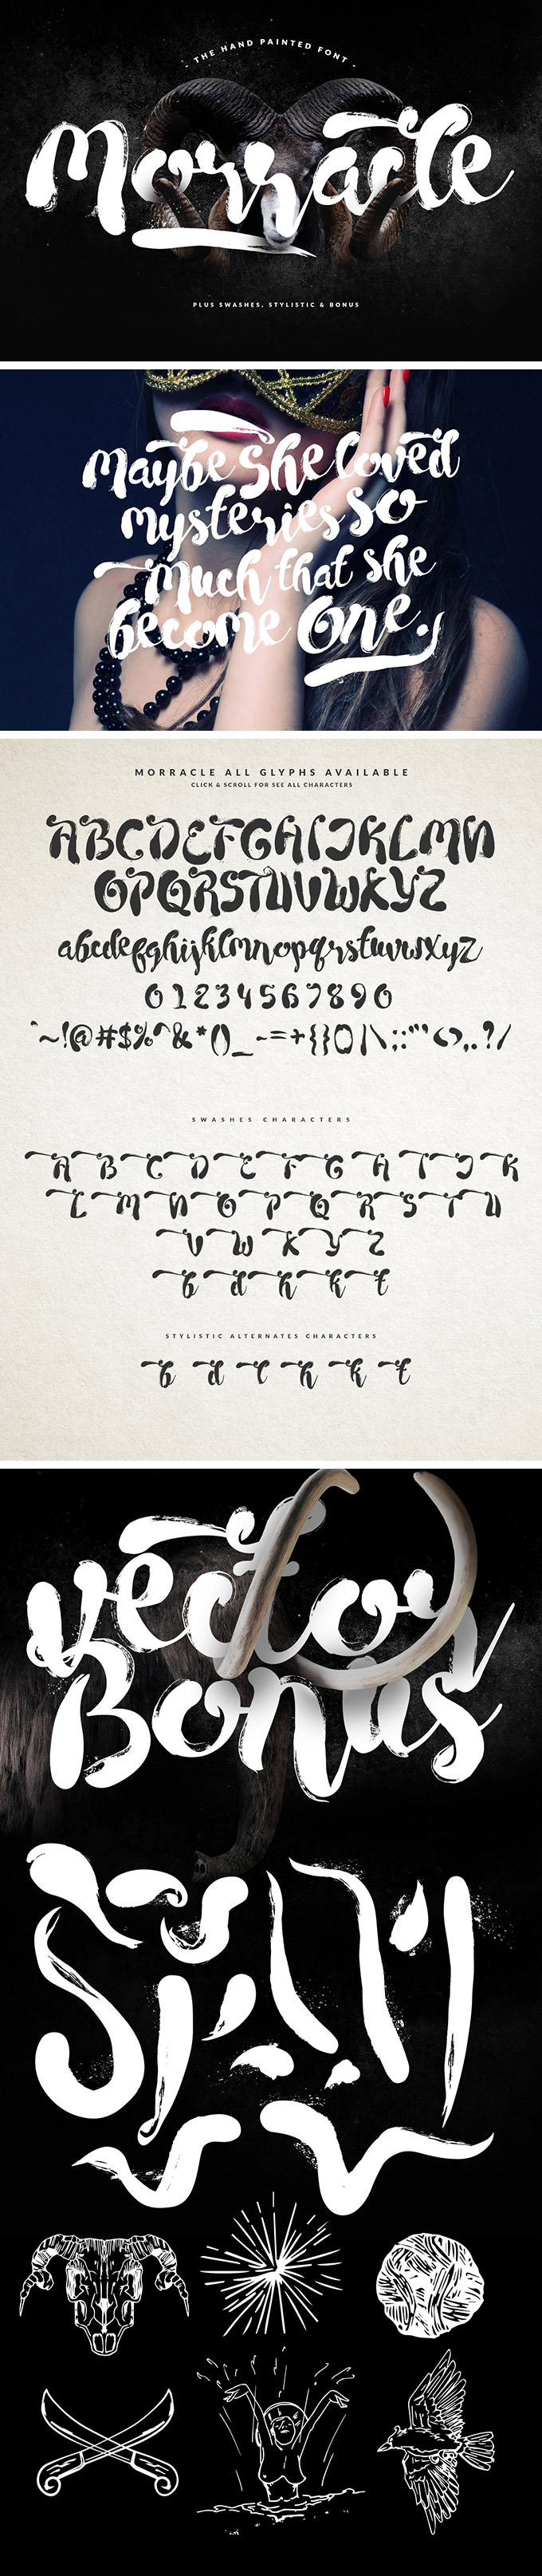 Morracle free font